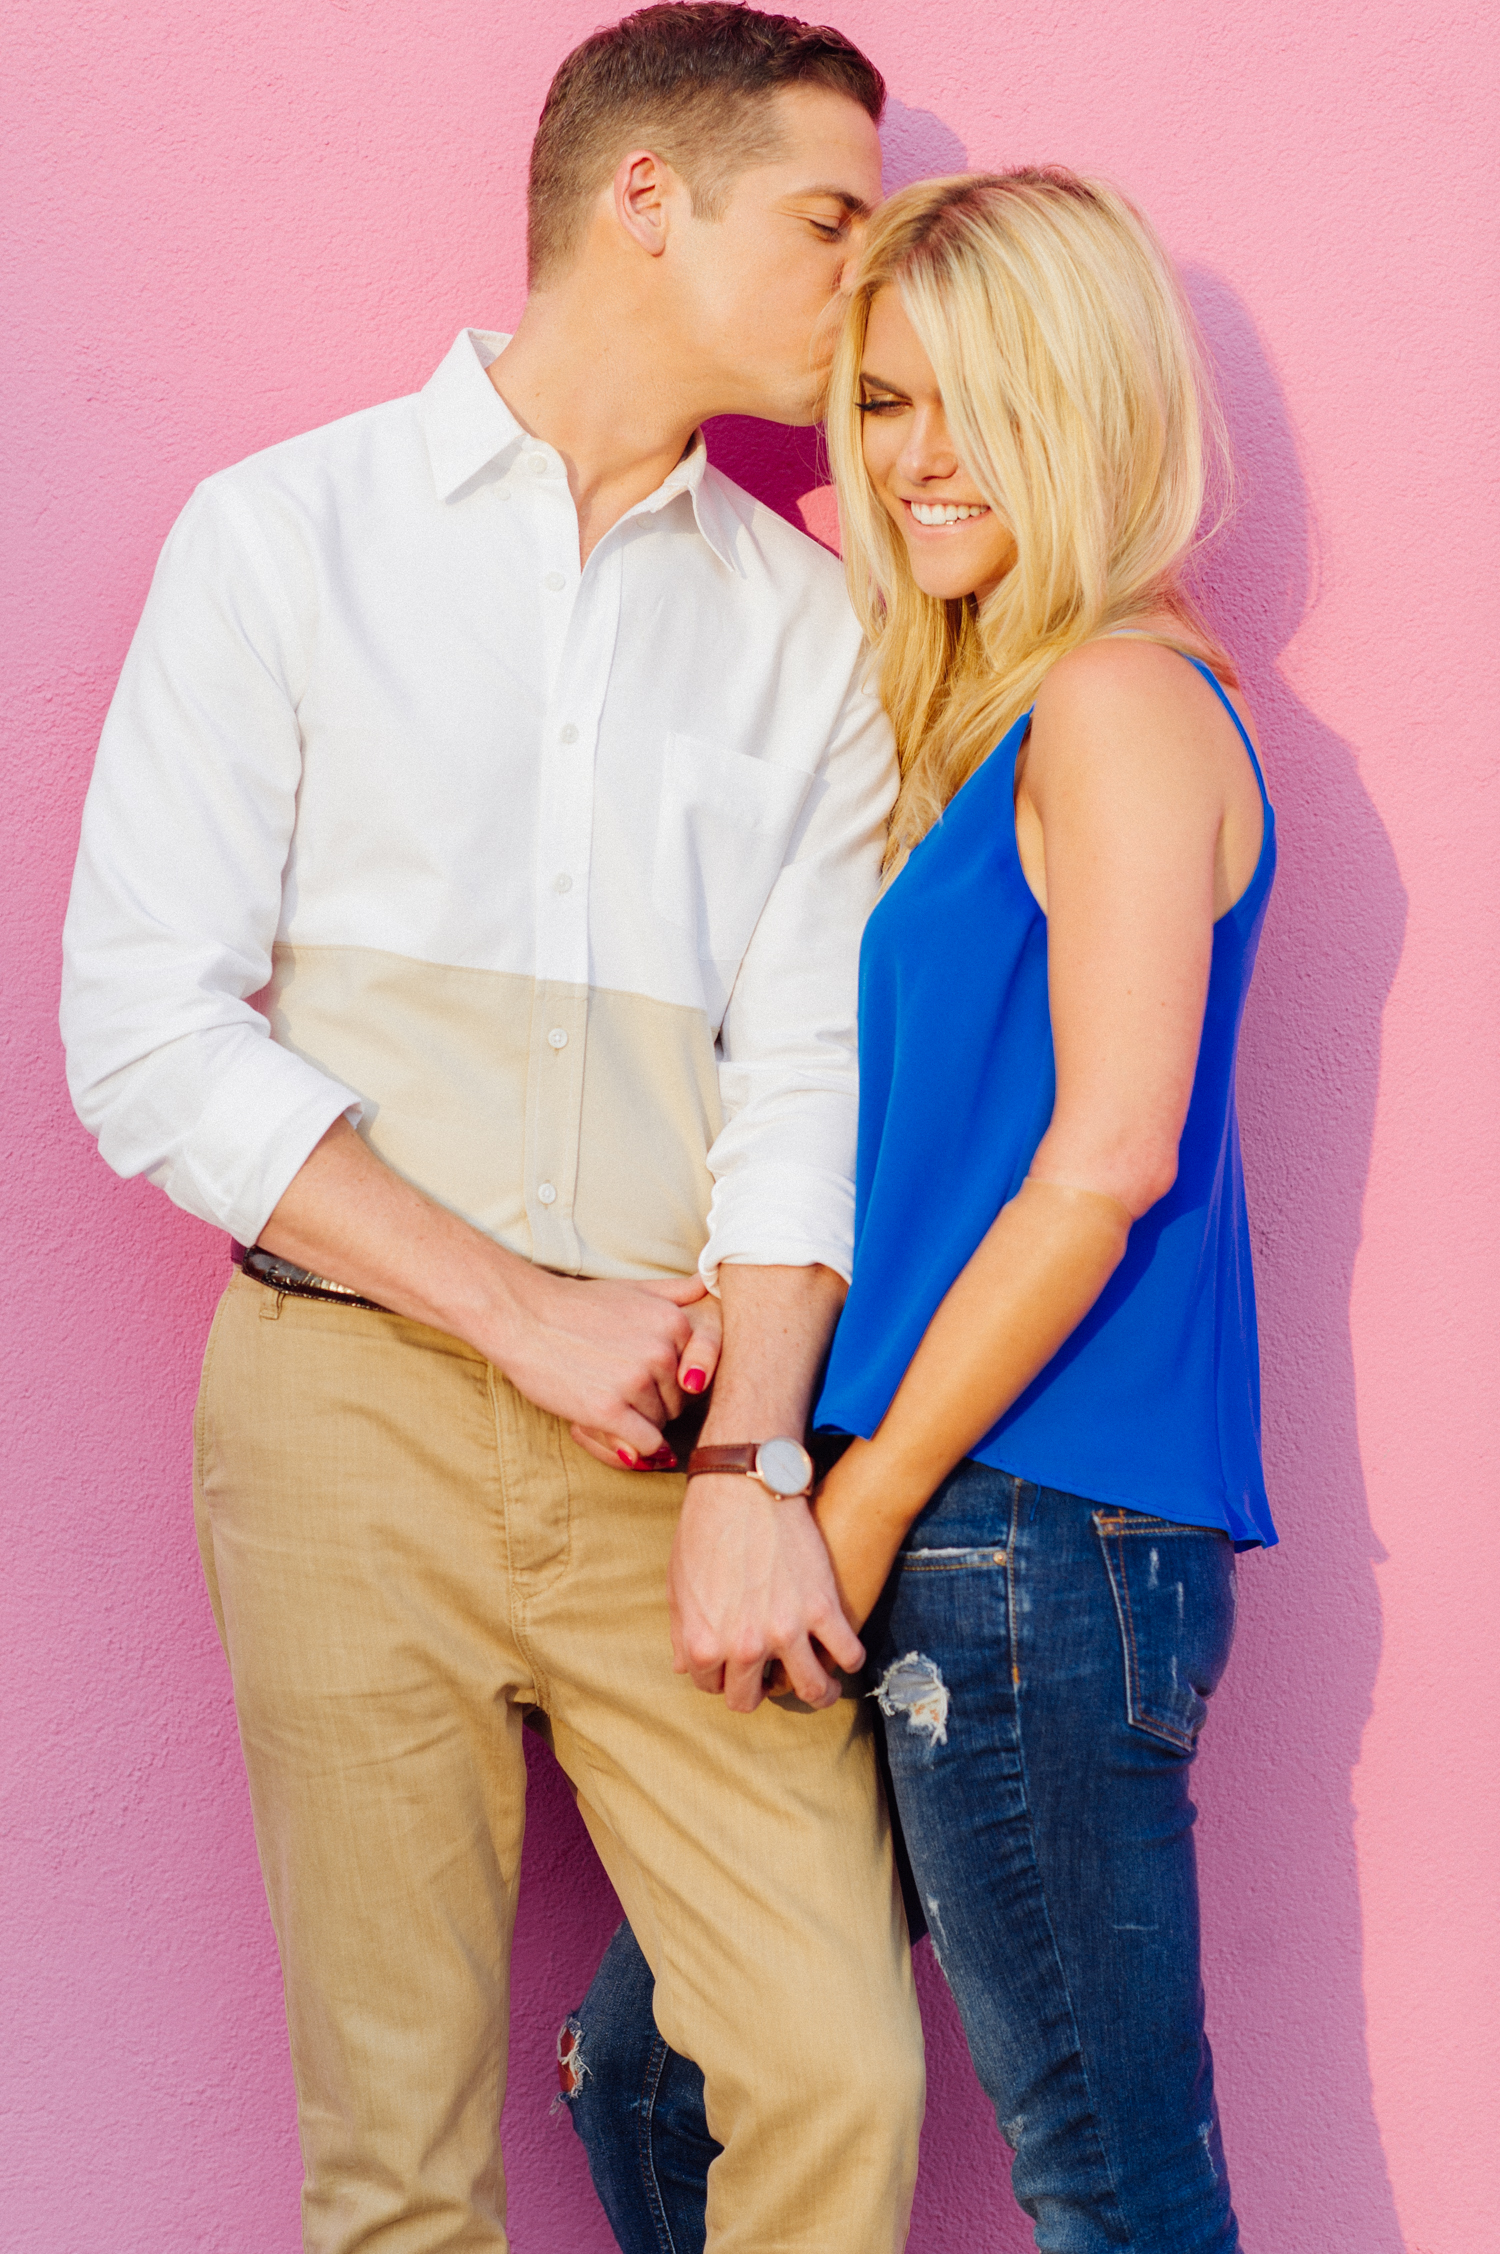 JasonKennedy.LaurenScruggs.Engagements5.jpg